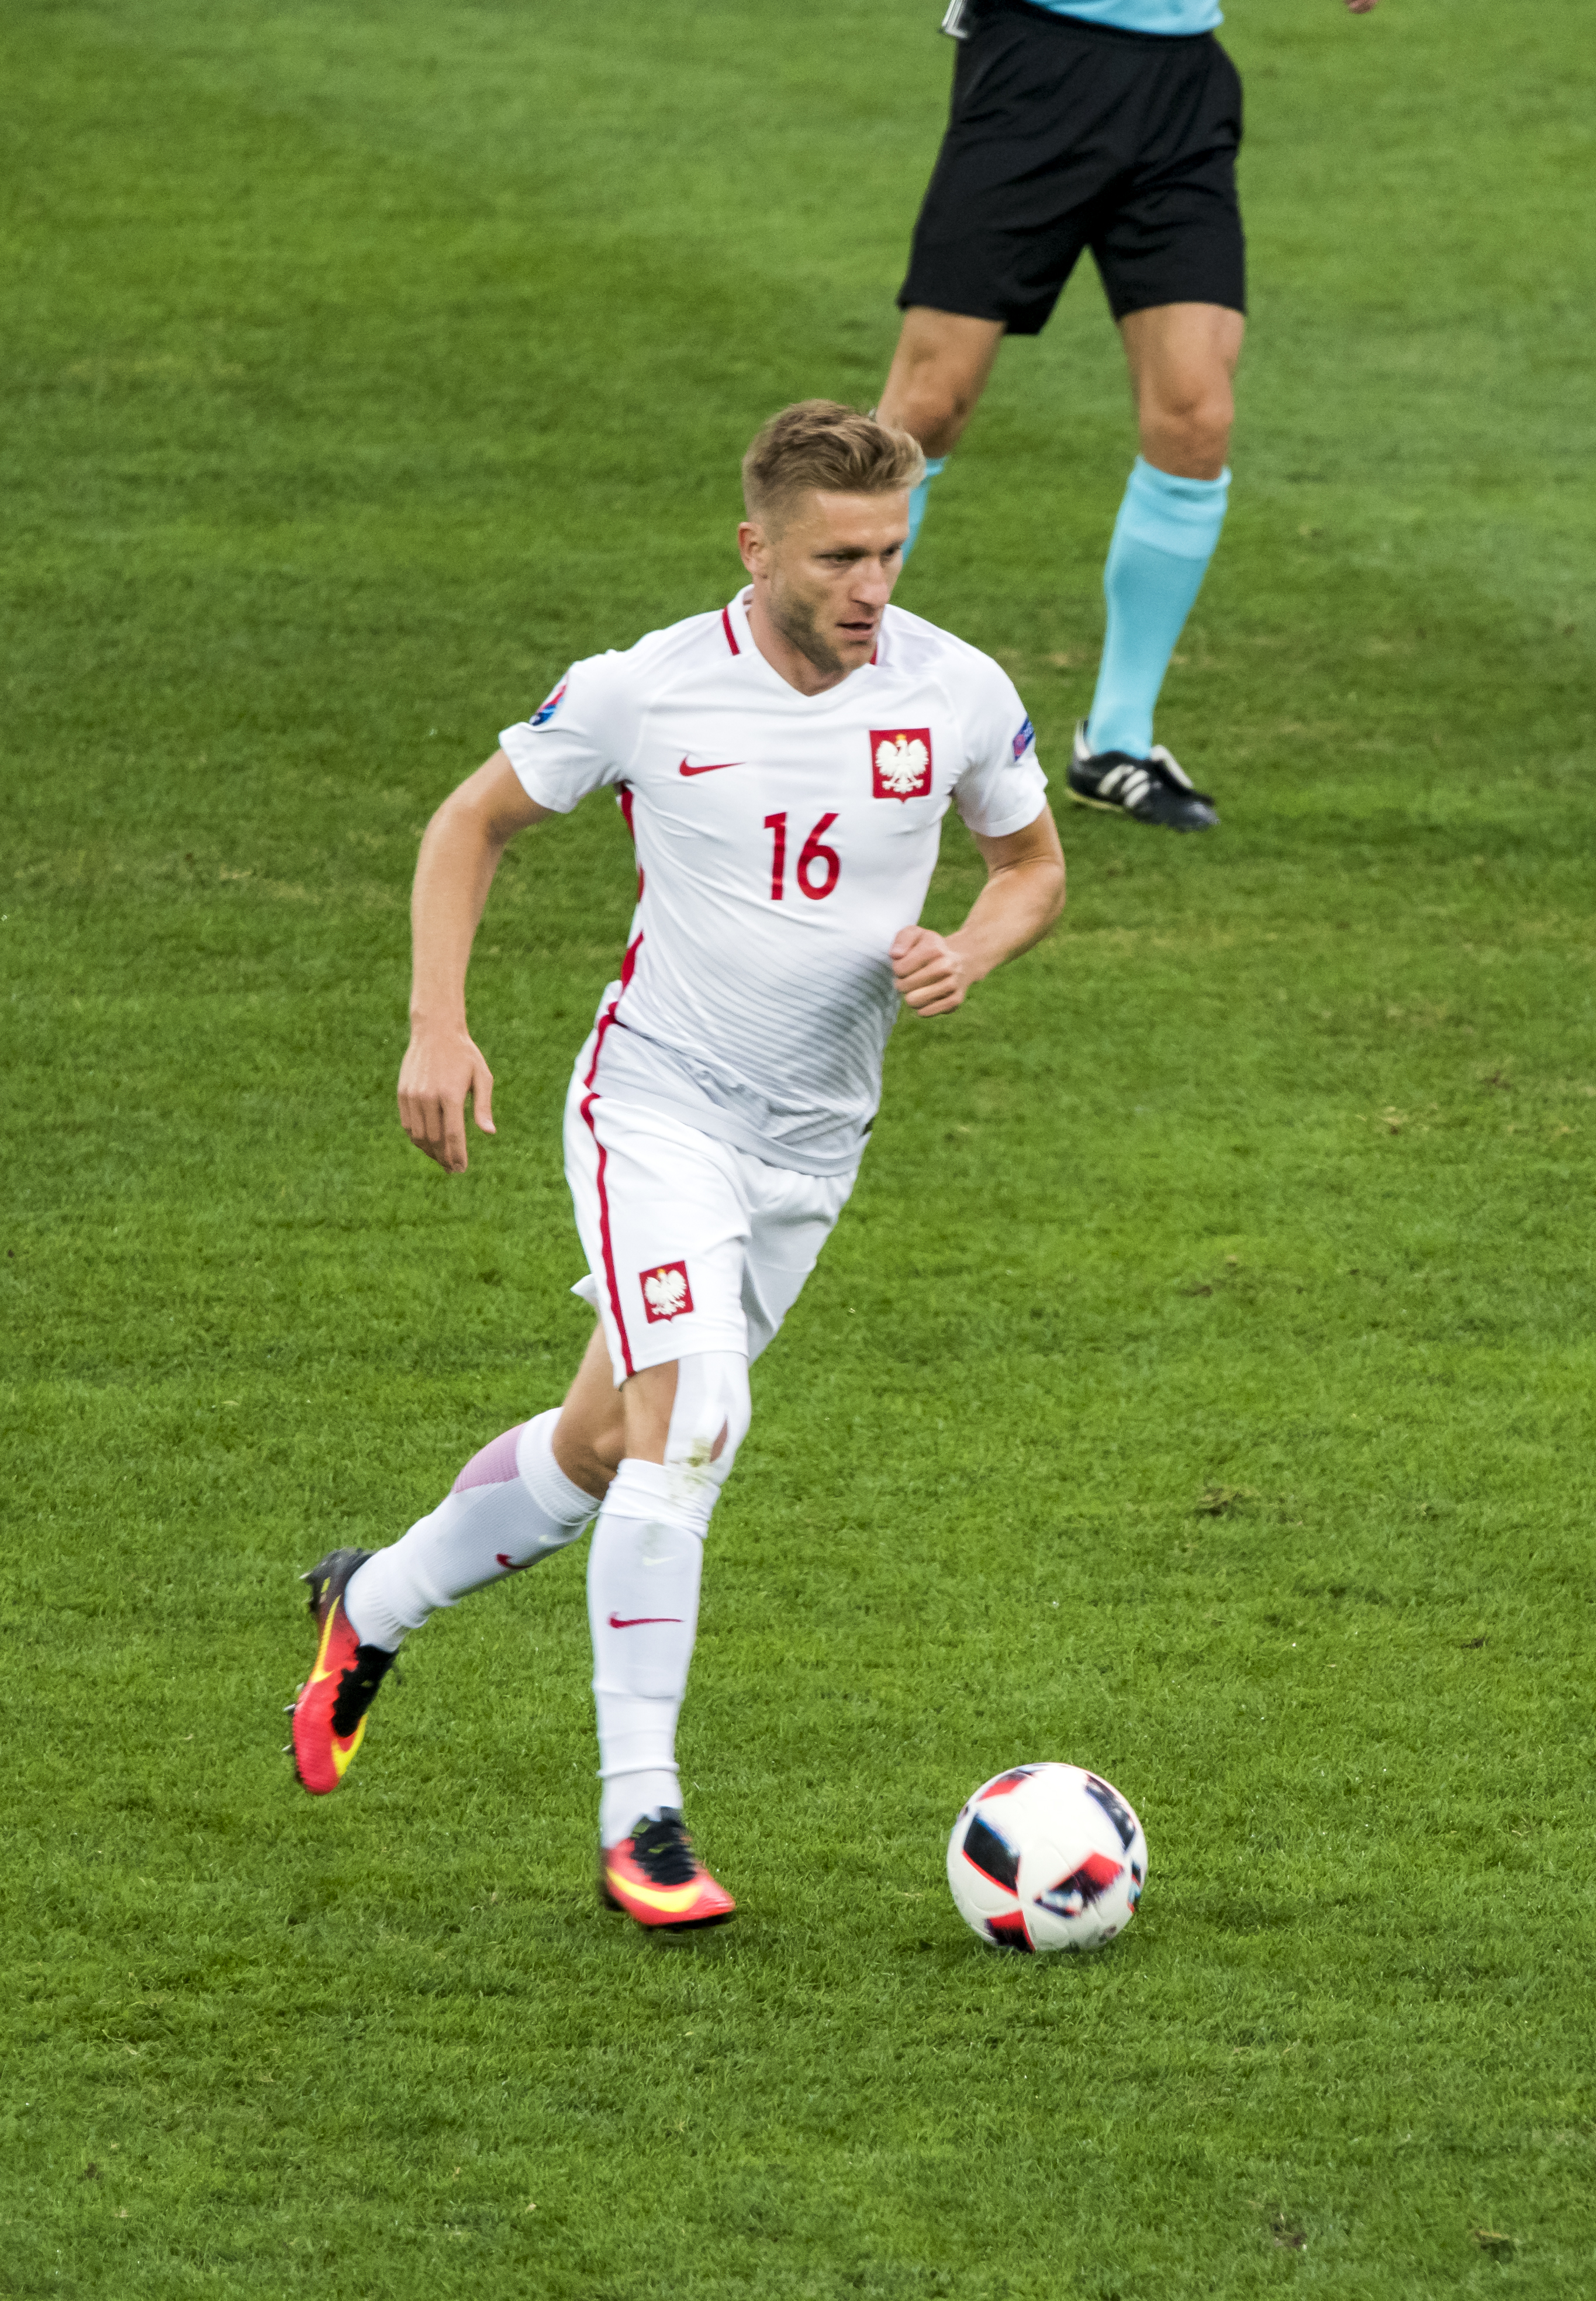 Błaszczykowski playing for Poland at the UEFA Euro 2016 in the quarter-final against Portugal